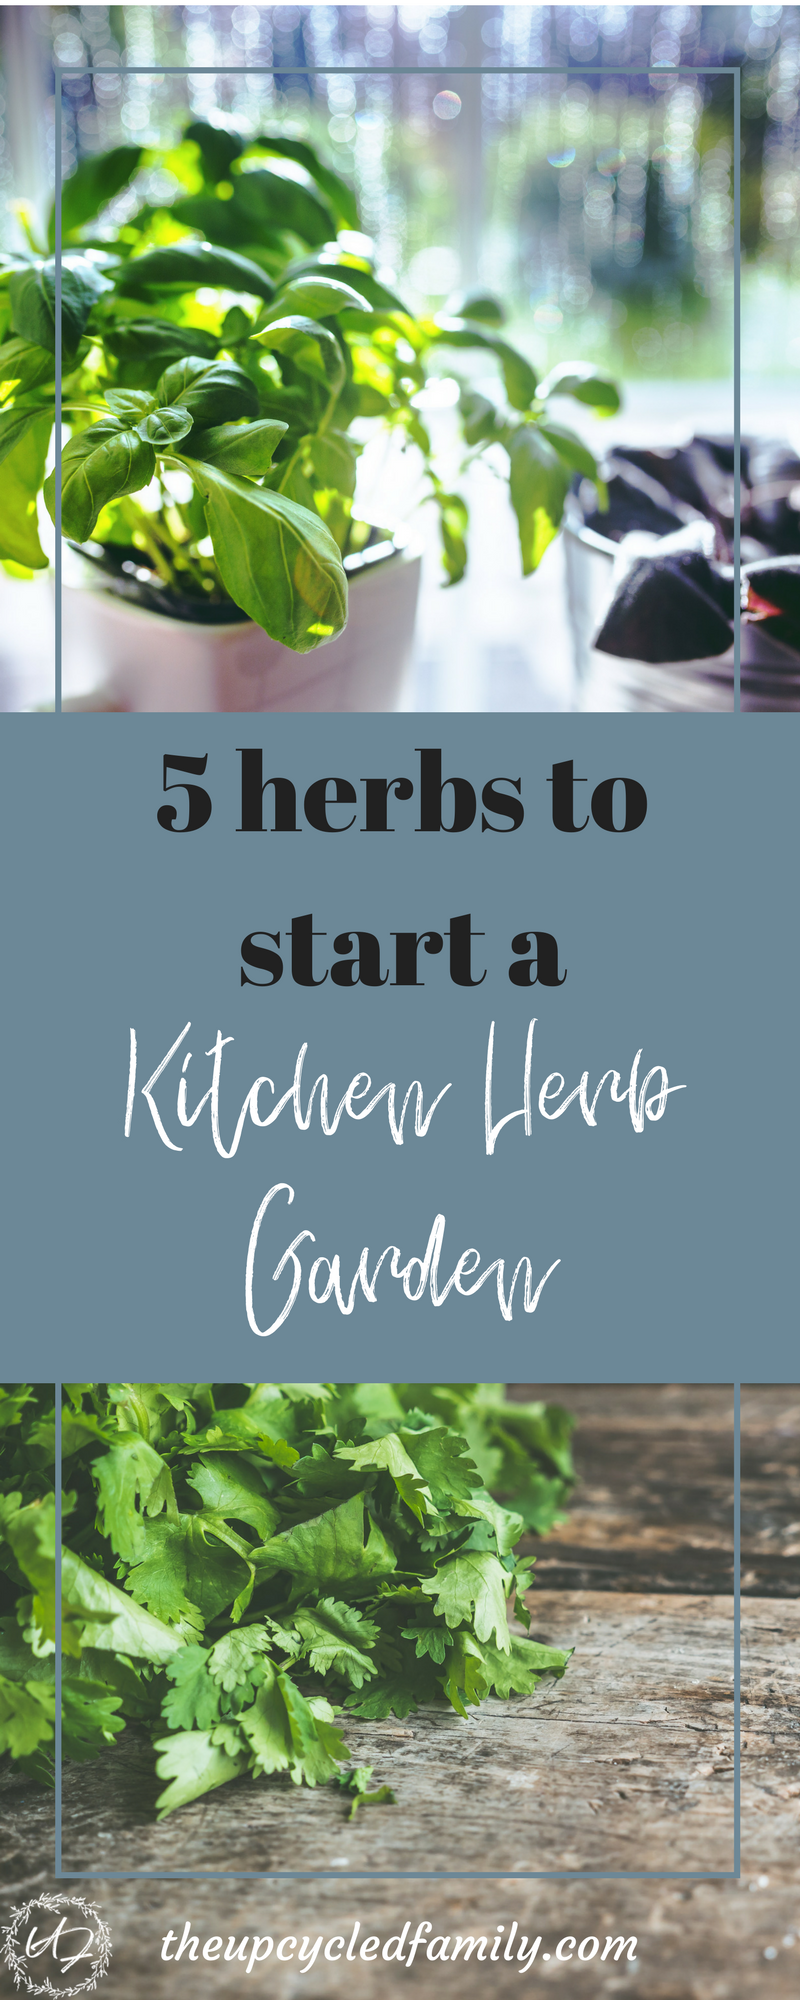 5 easy herbs to grow in your kitchen herb garden | Kitchen herb ...